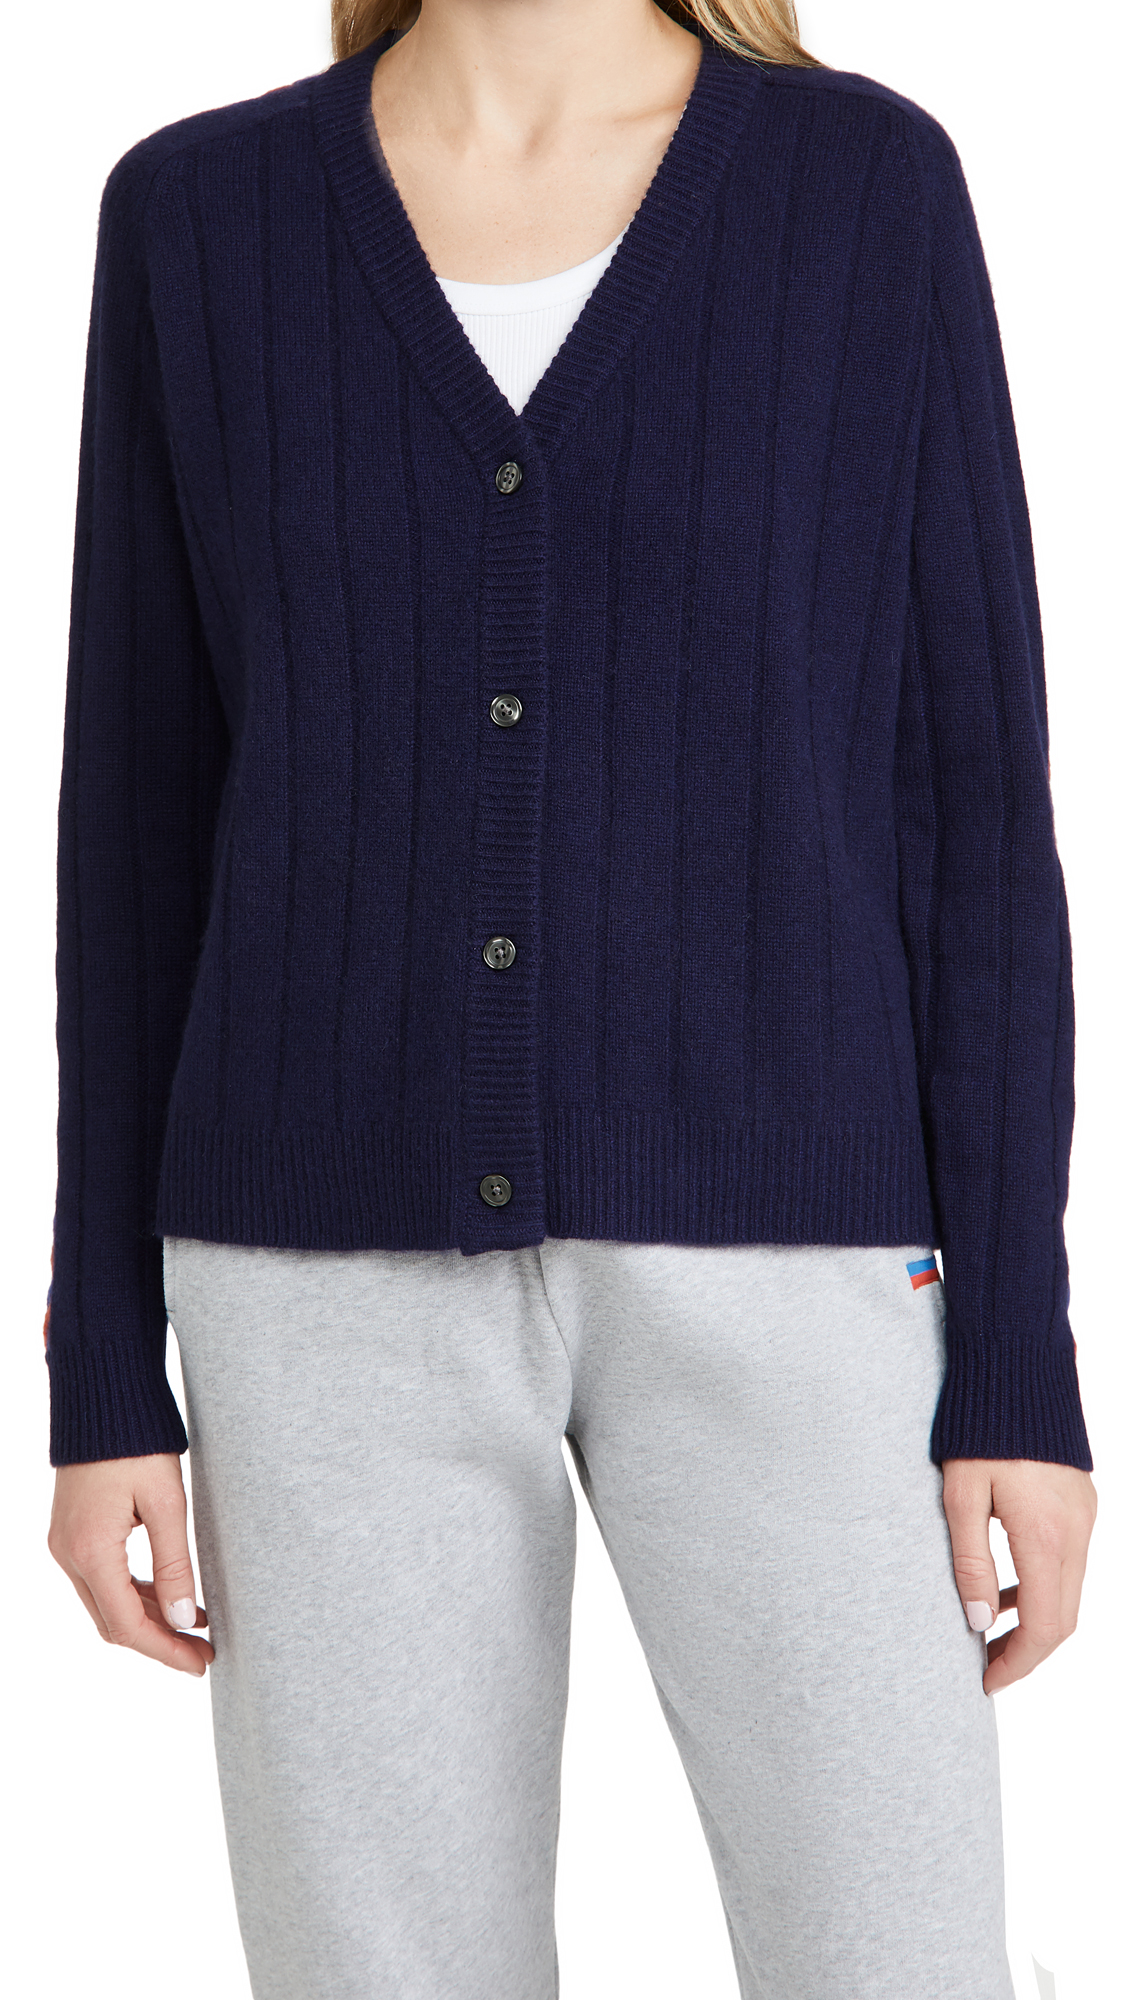 KULE The Viola Cashmere Cardigan